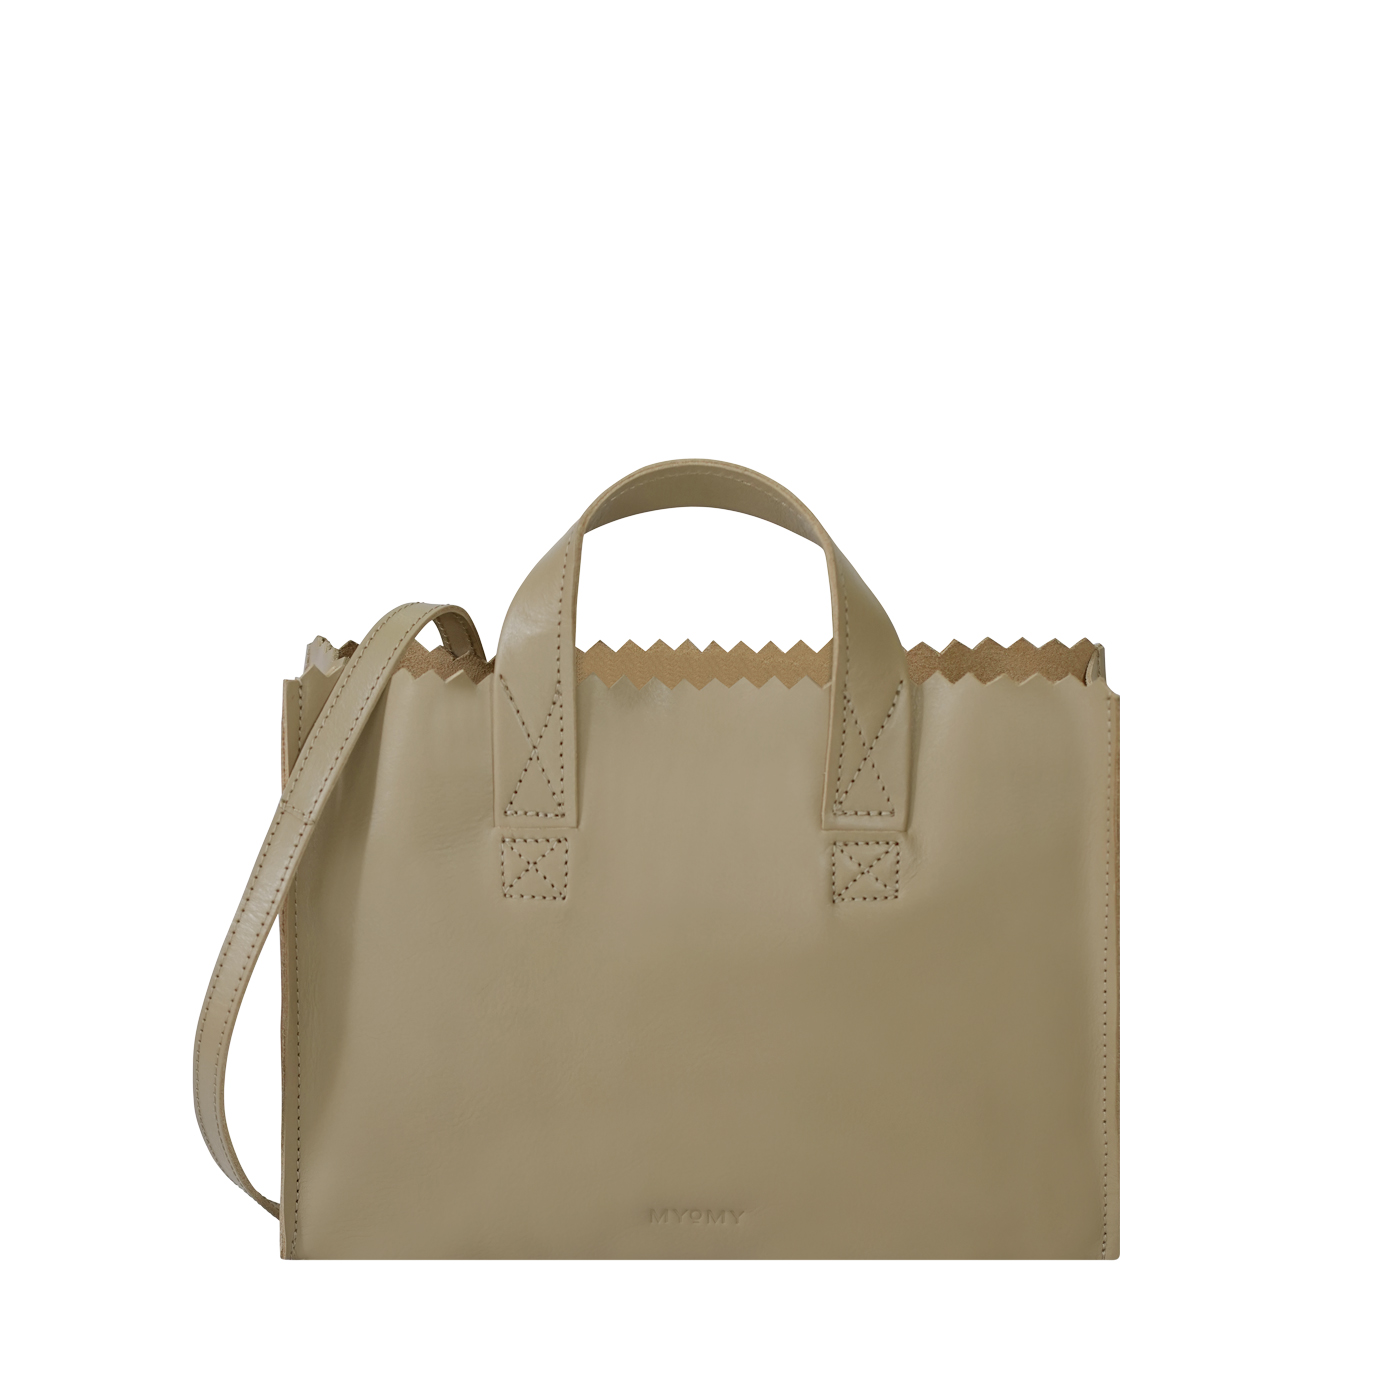 MY PAPER BAG Mini handbag cross-body - sand